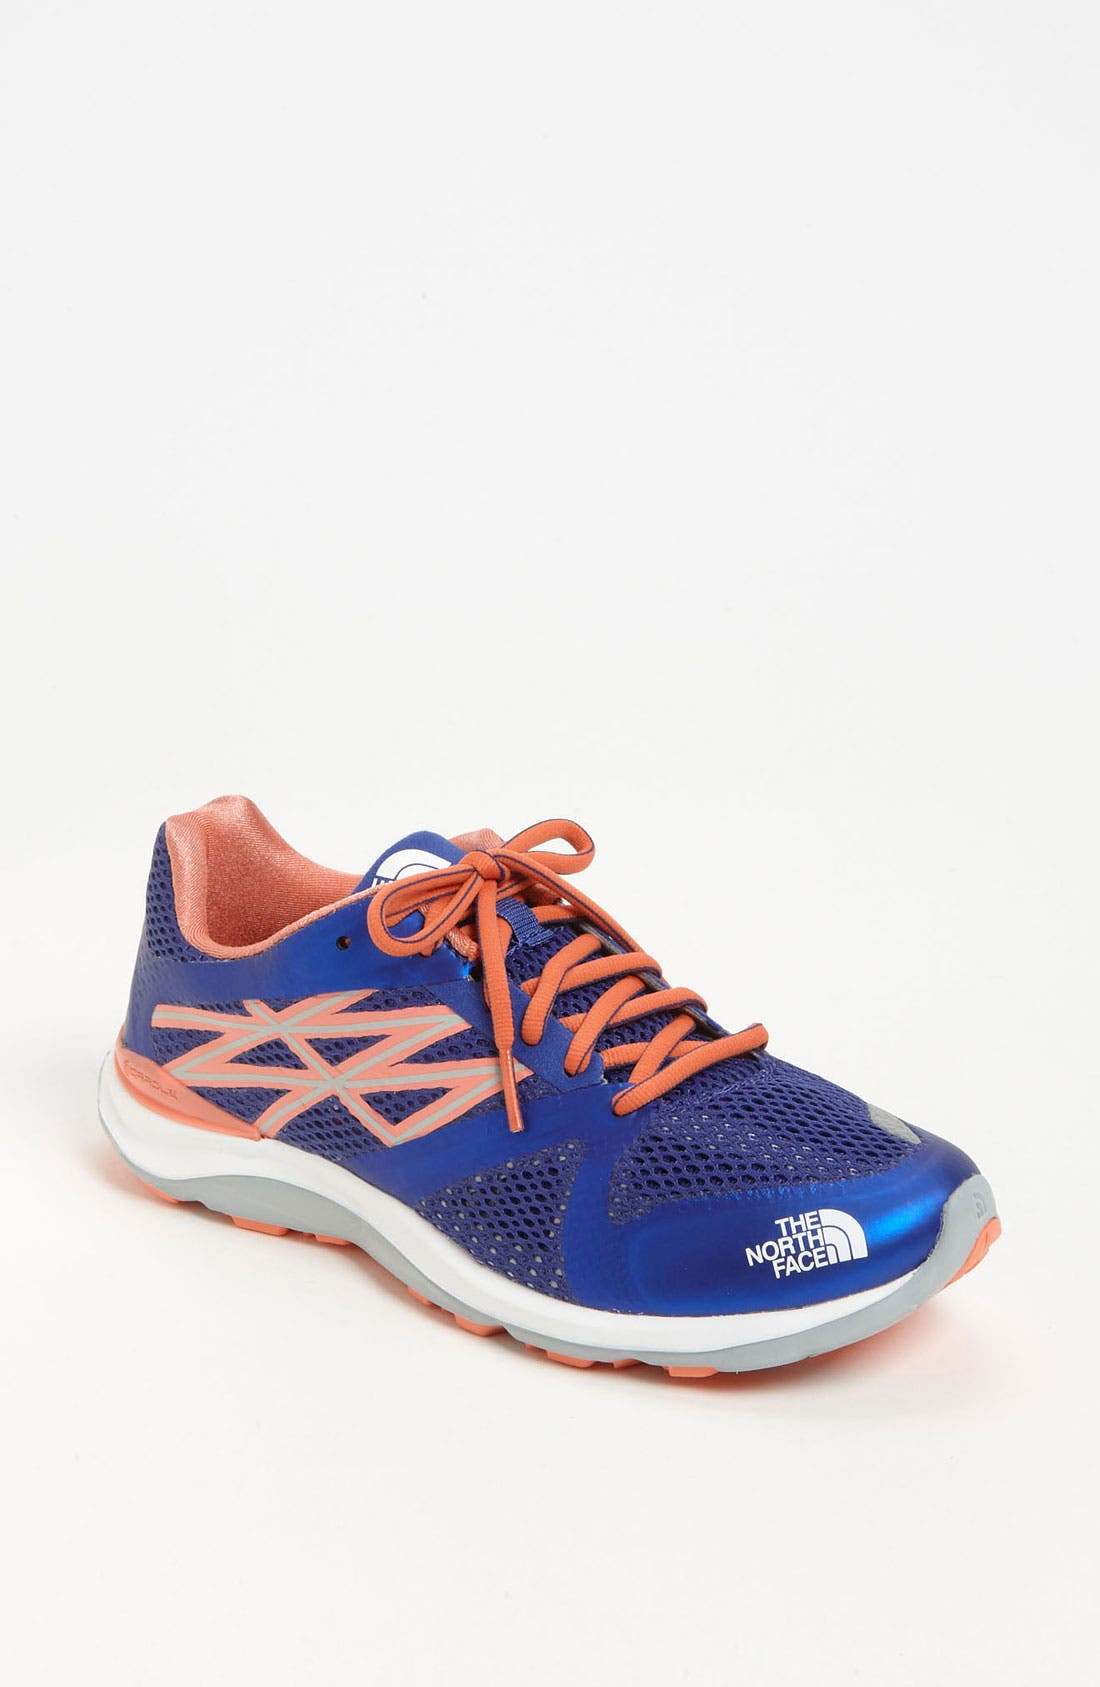 Main Image - The North Face 'Hyper-Track Guide' Training Shoe (Women)